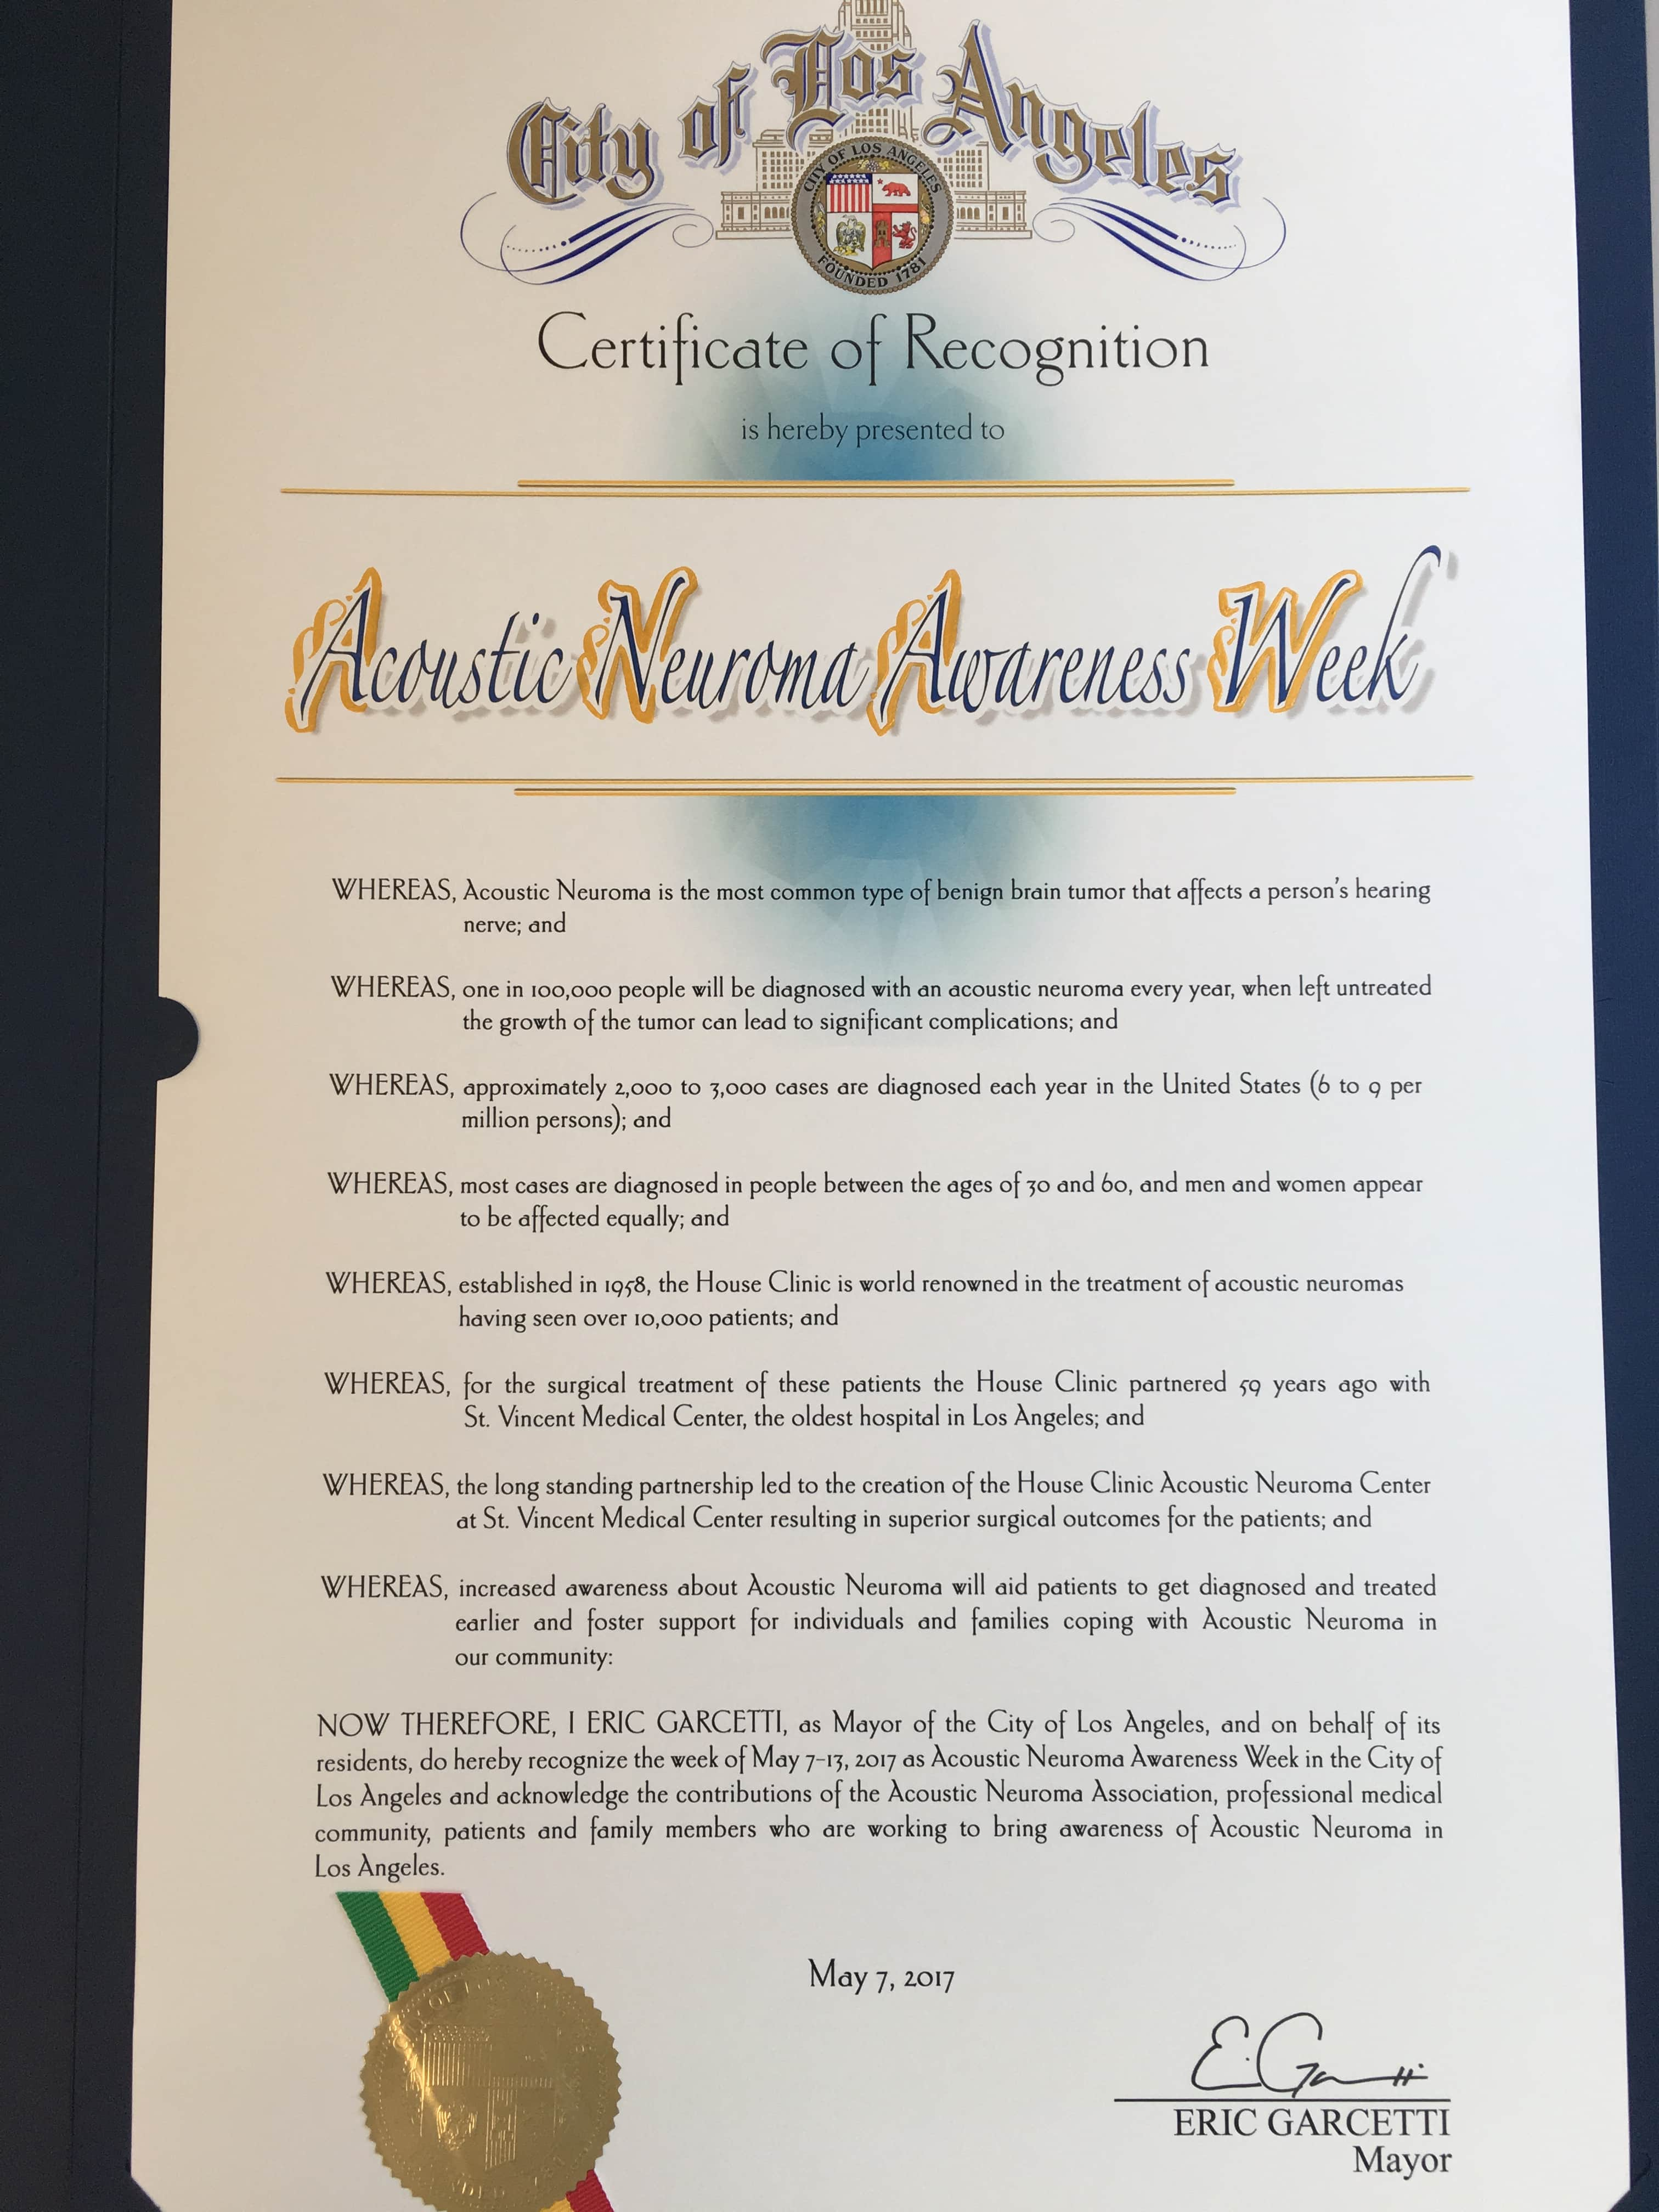 The week of May 7-13 has been recognized as Acoustic Neuroma Awareness W-min